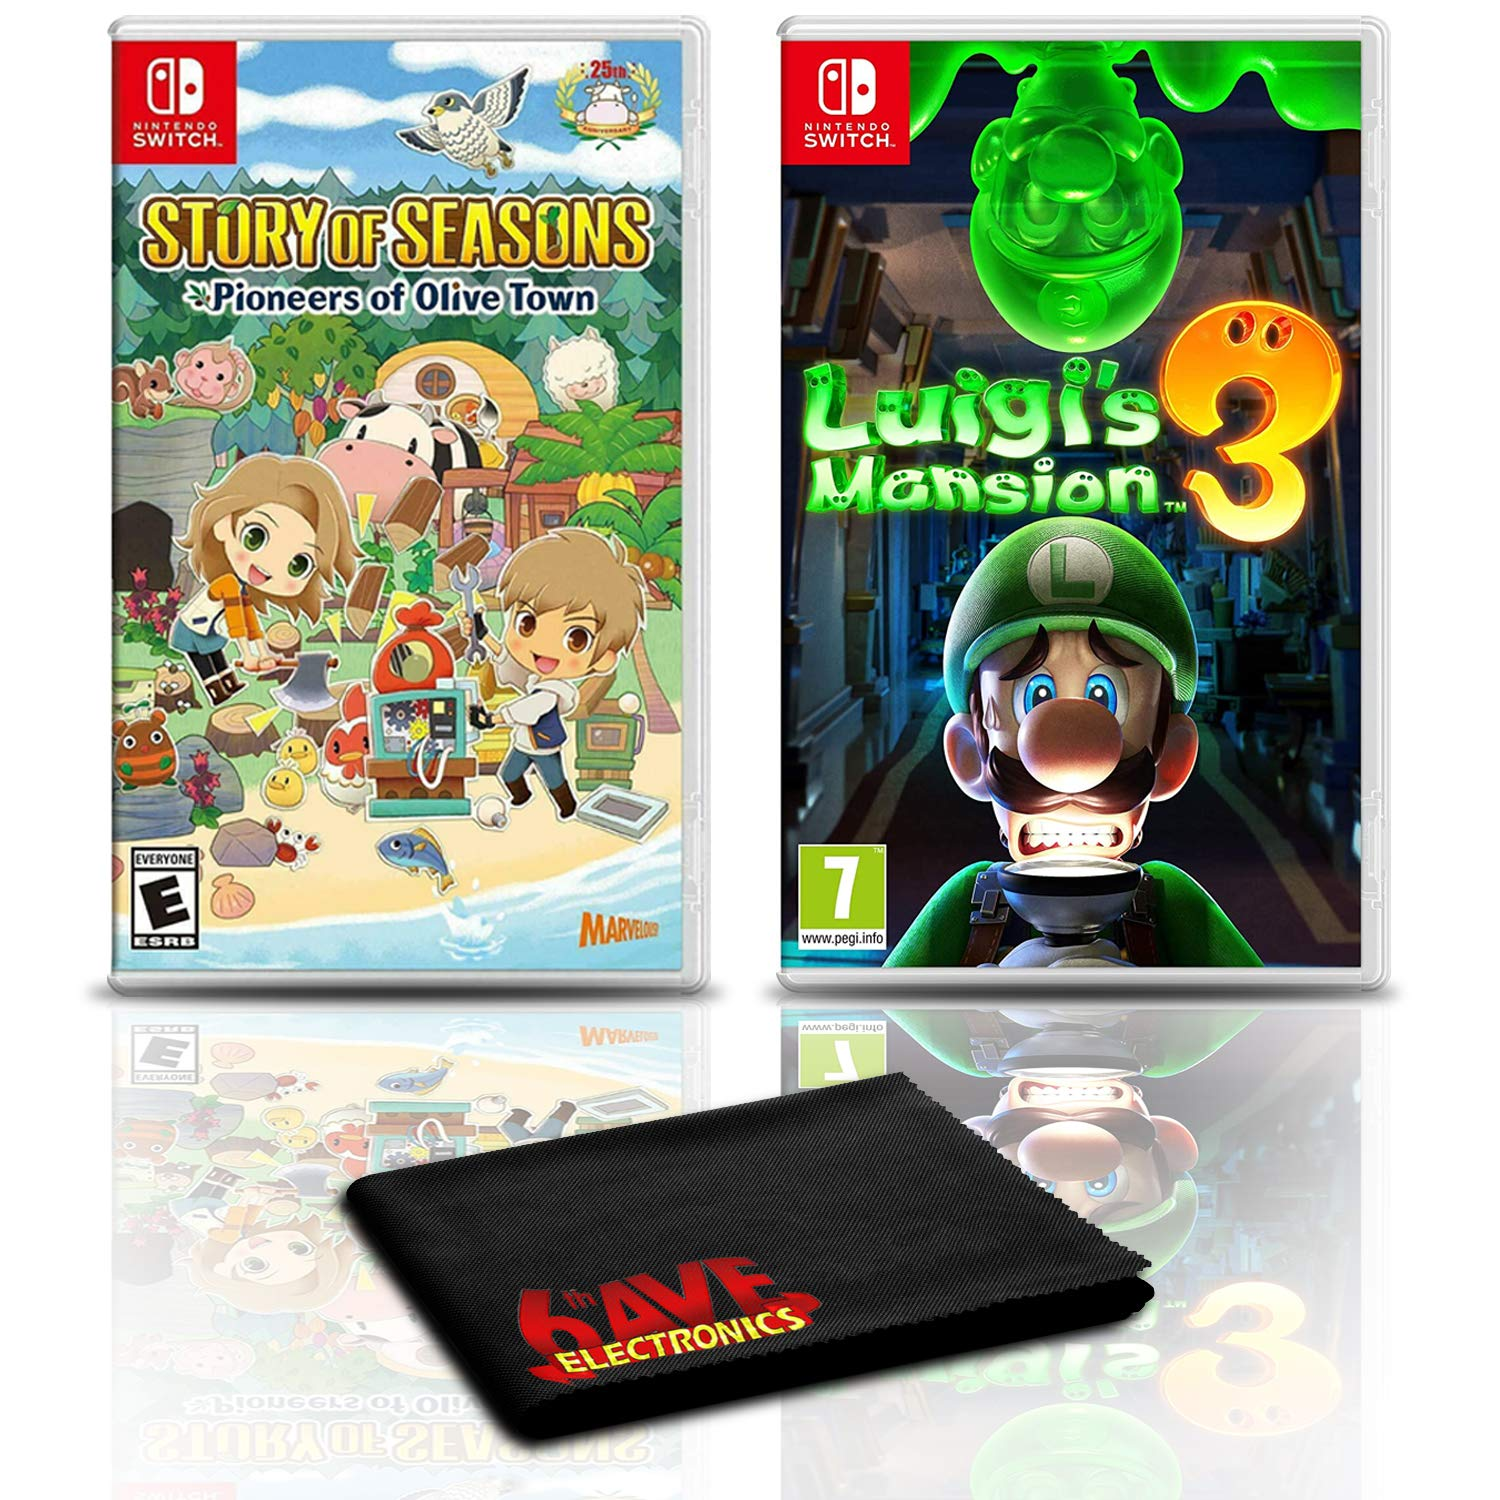 Story of Seasons: Pioneers of Olive Town with Luigi's Mansion 3 - 2-Pack Game Bundle For Nintendo Switch